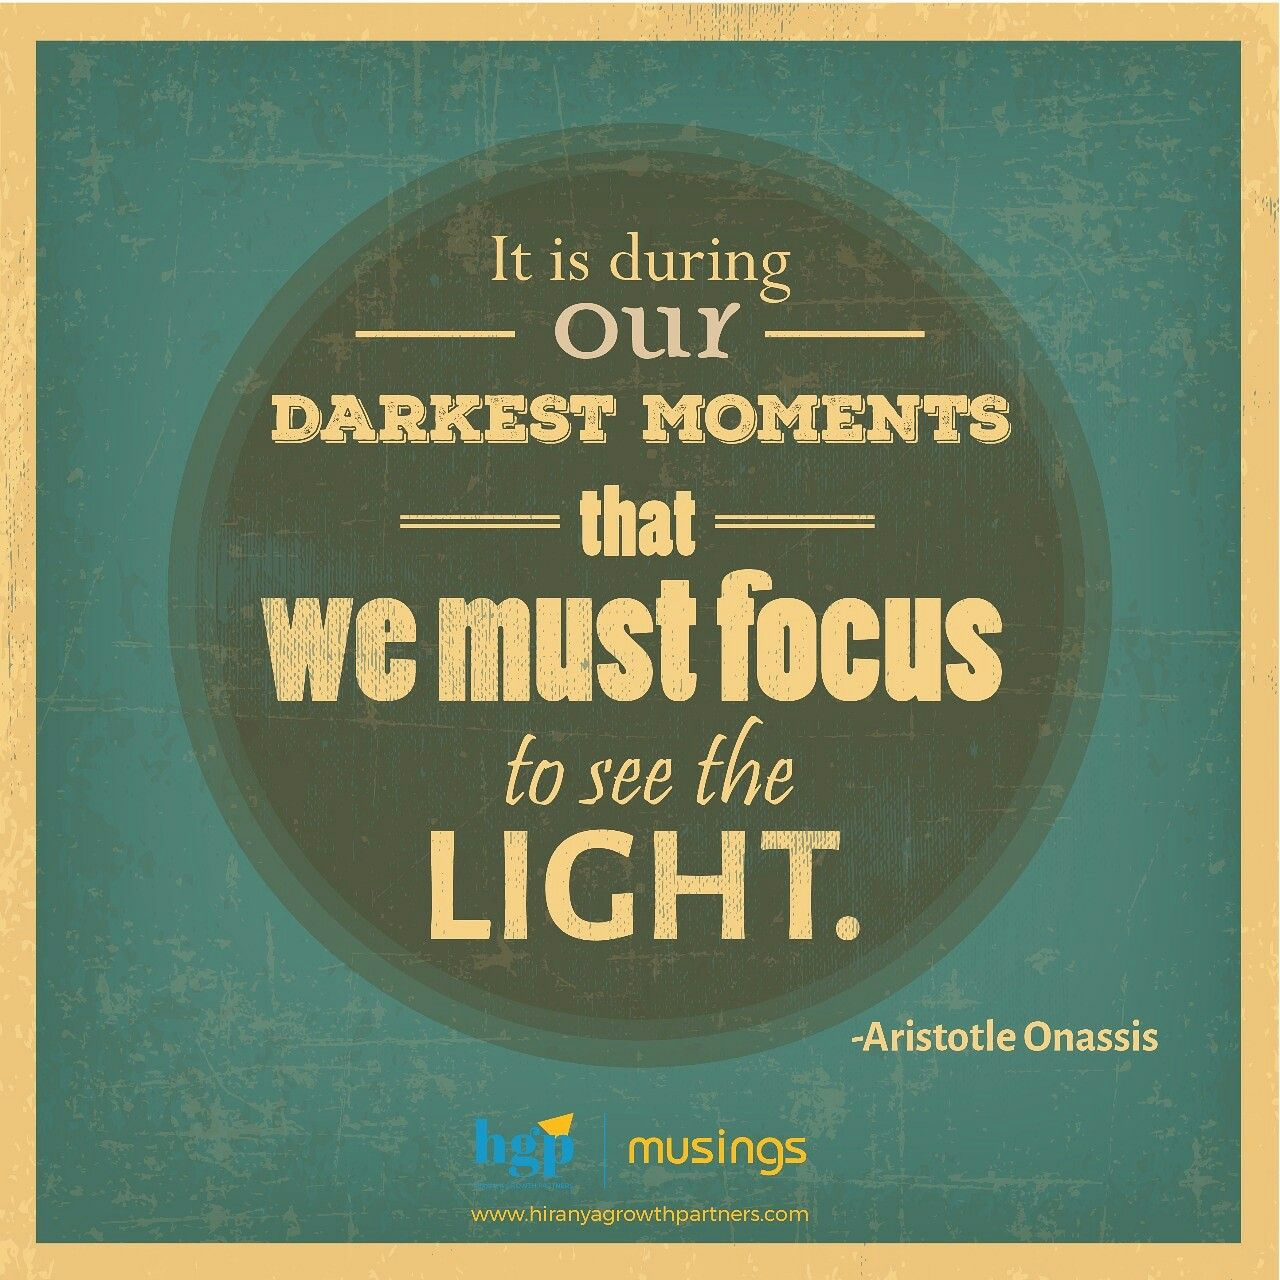 Hgpmusings Today Features A Quote Attributed To Aristotle Onassis It Is During Our Darkest Mome Light Quotes Inspirational Quotes Best Inspirational Quotes